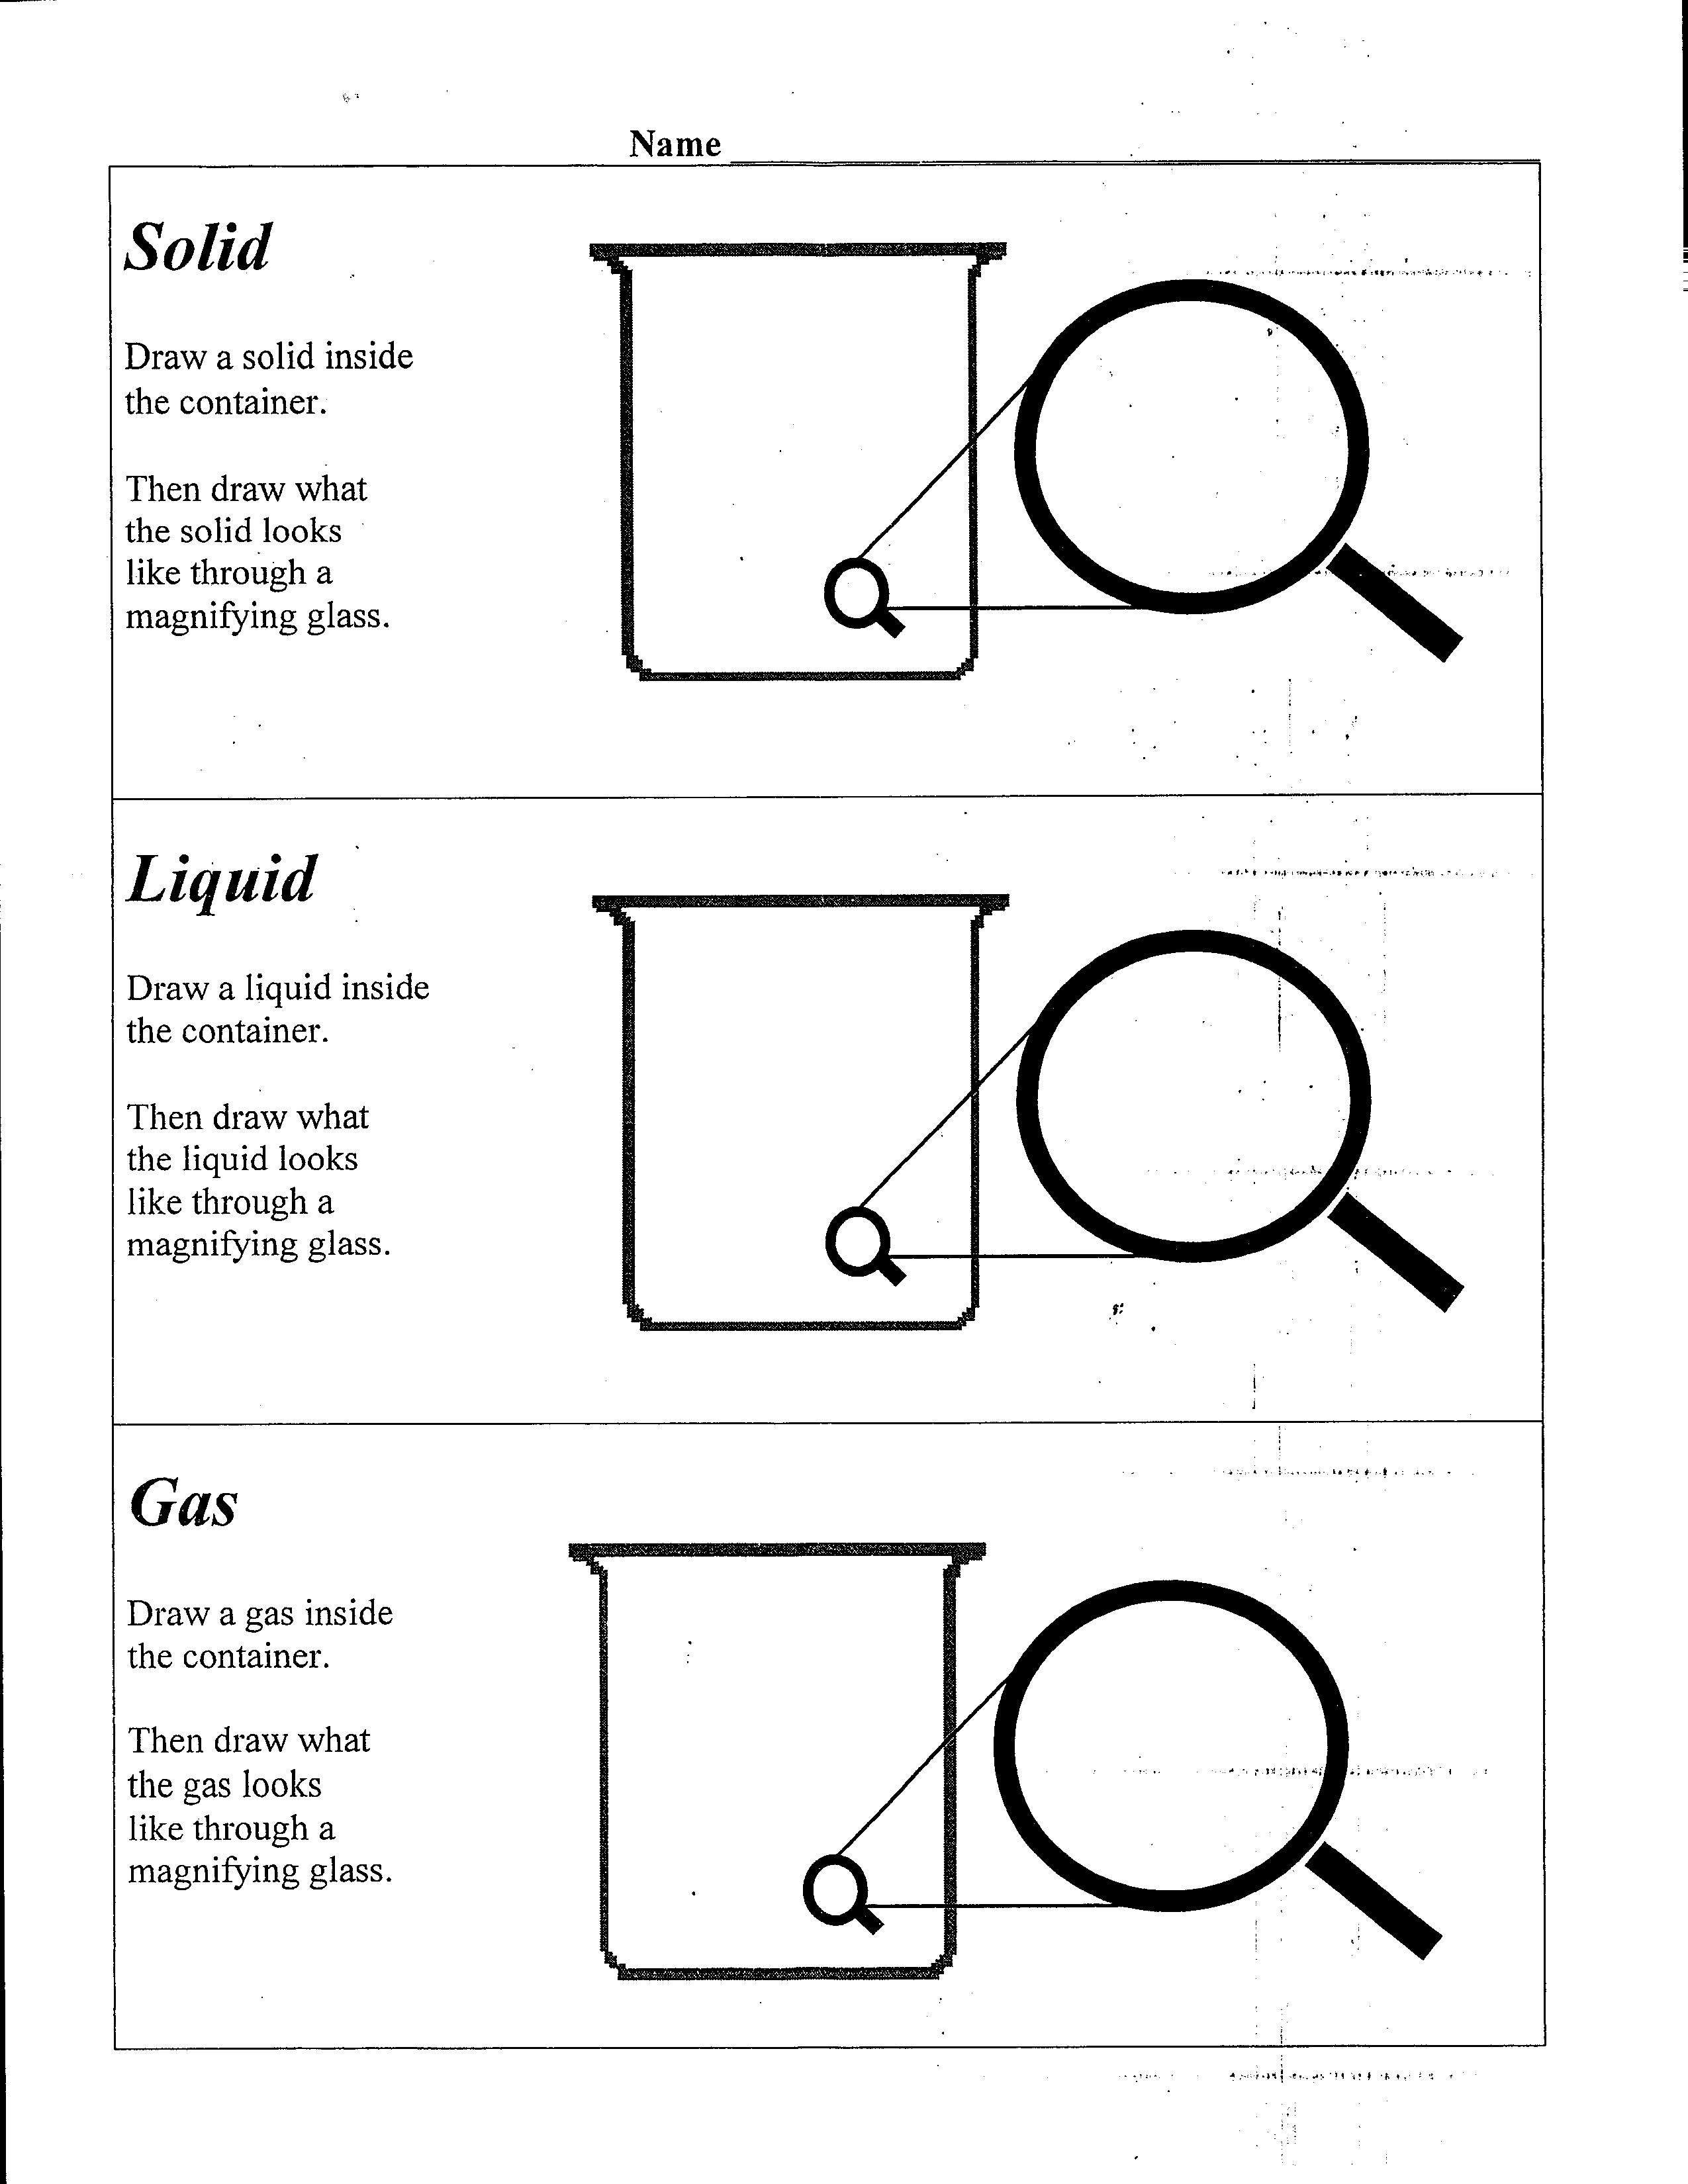 Worksheets Solids Liquids And Gases Worksheets worksheet solid liquid gas fun study 28 templates solids liquids and by gases